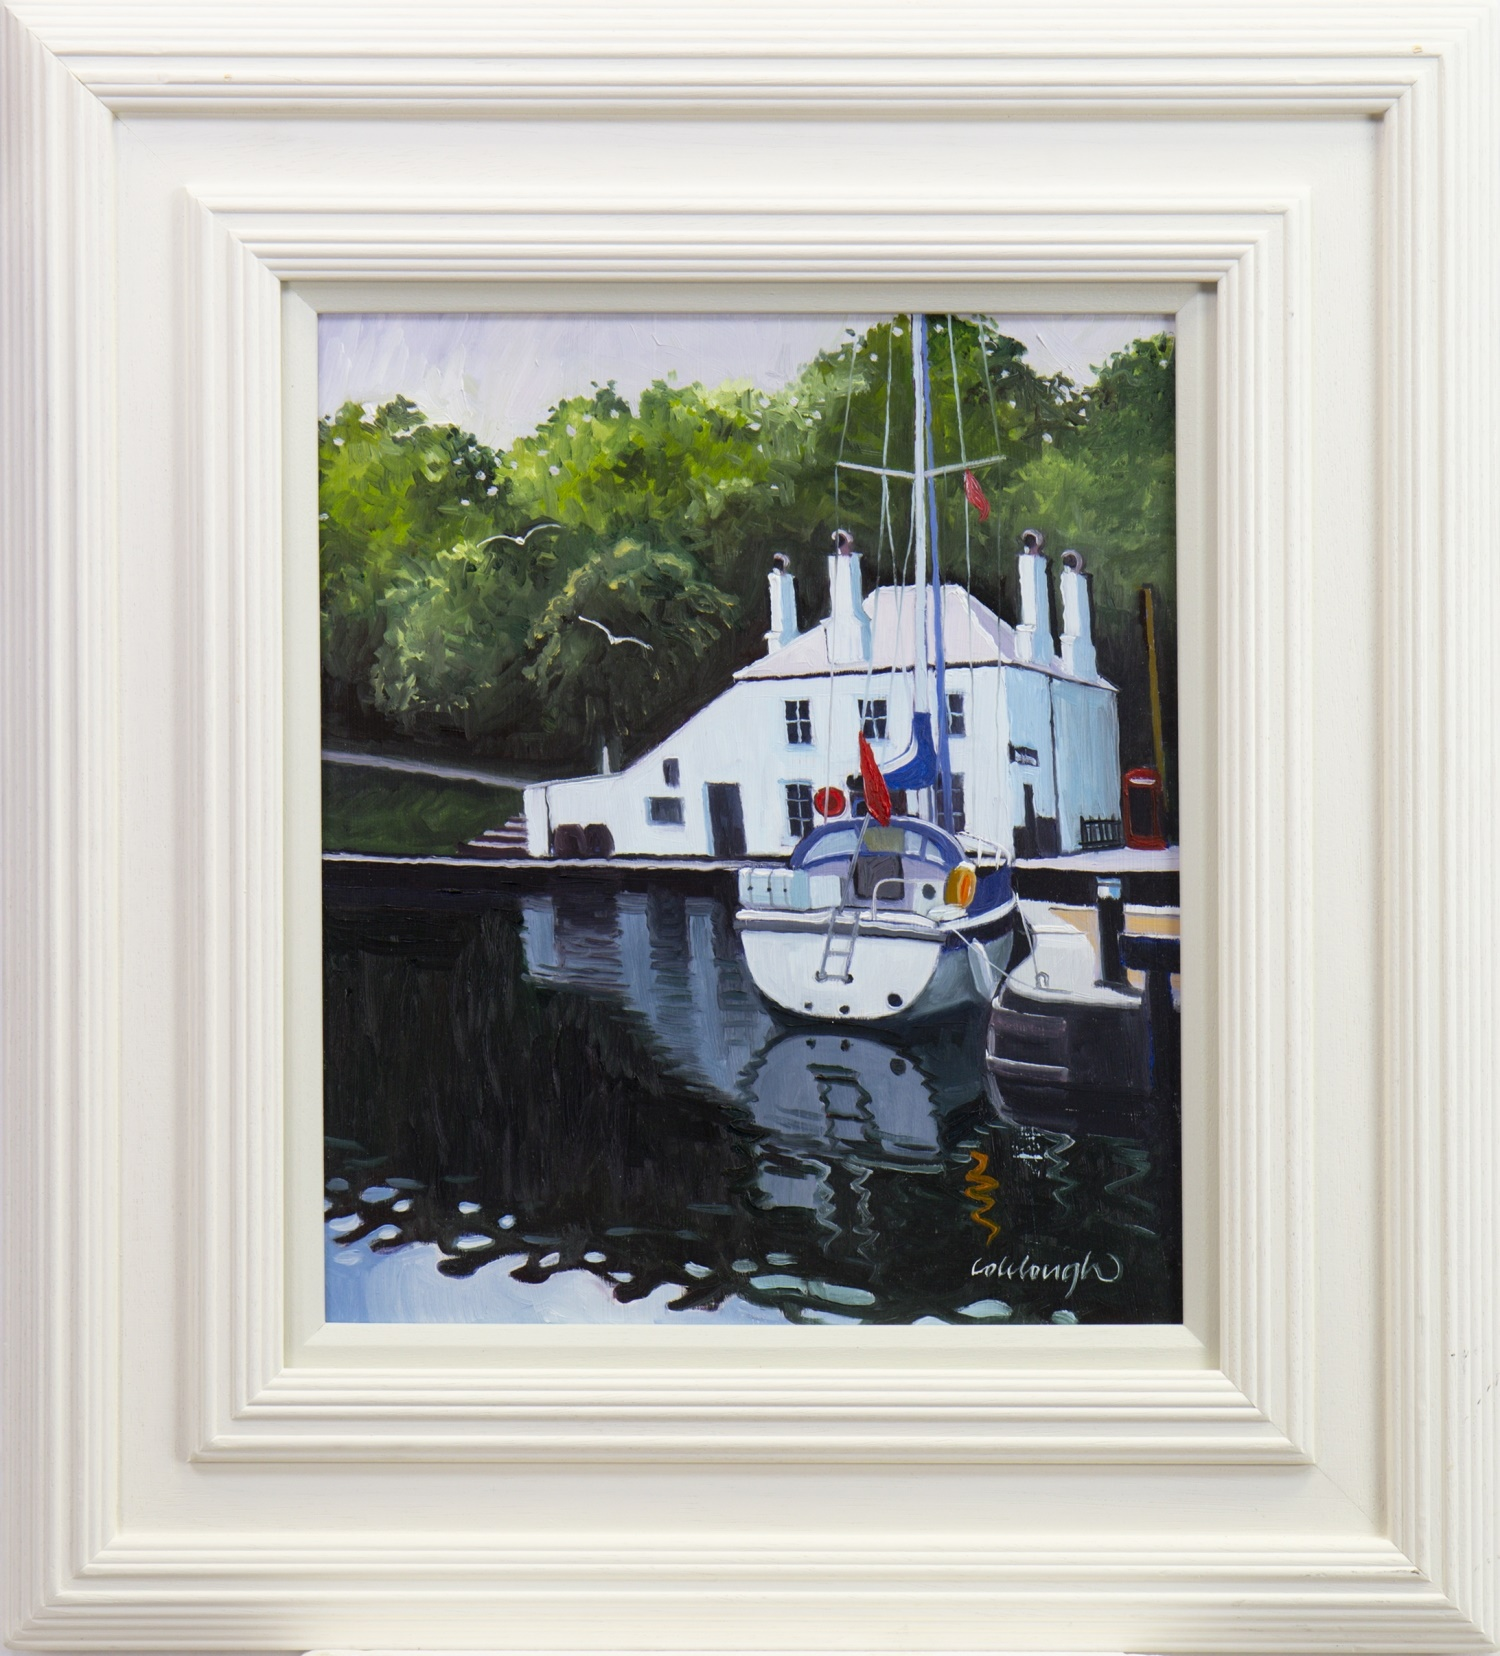 CRINAN REFLECTIONS, AN OIL BY FRANK COLCLOUGH